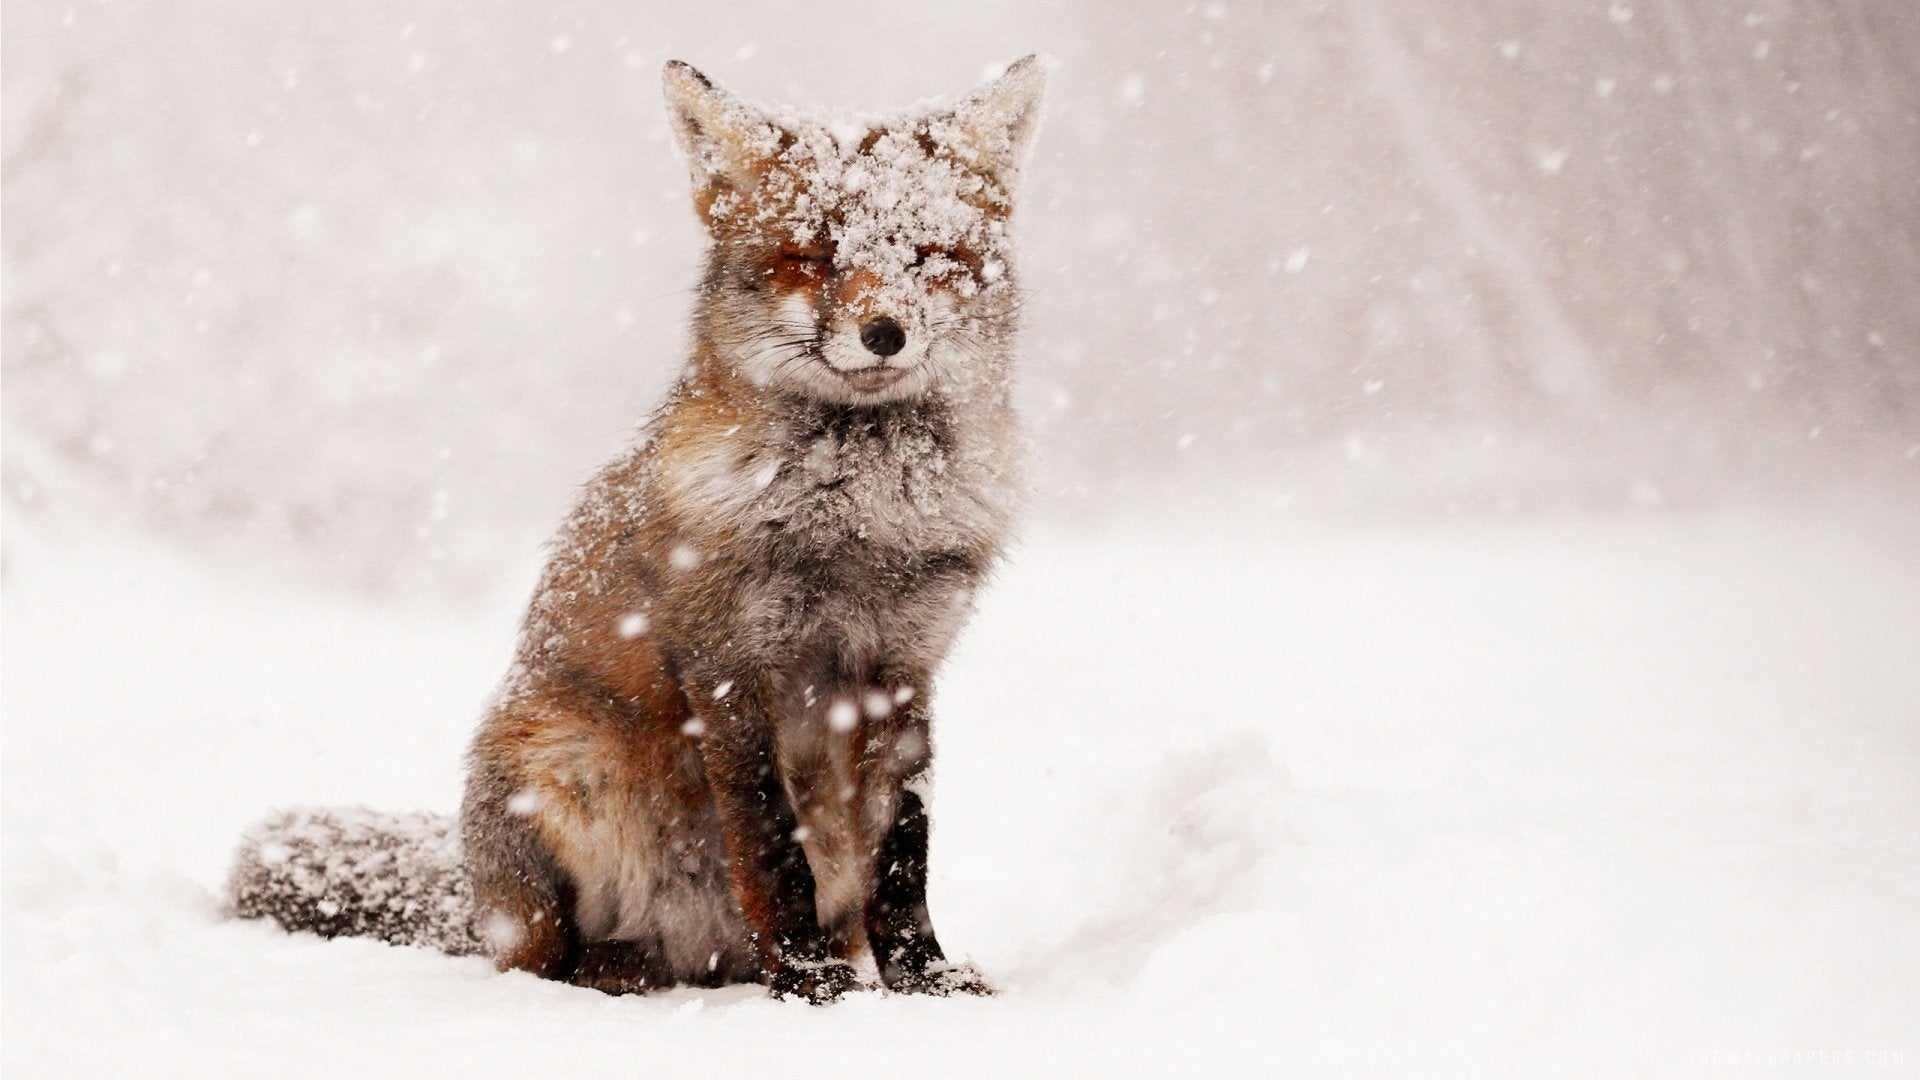 Fox In The Snow Diamond Painting Kit - DIY